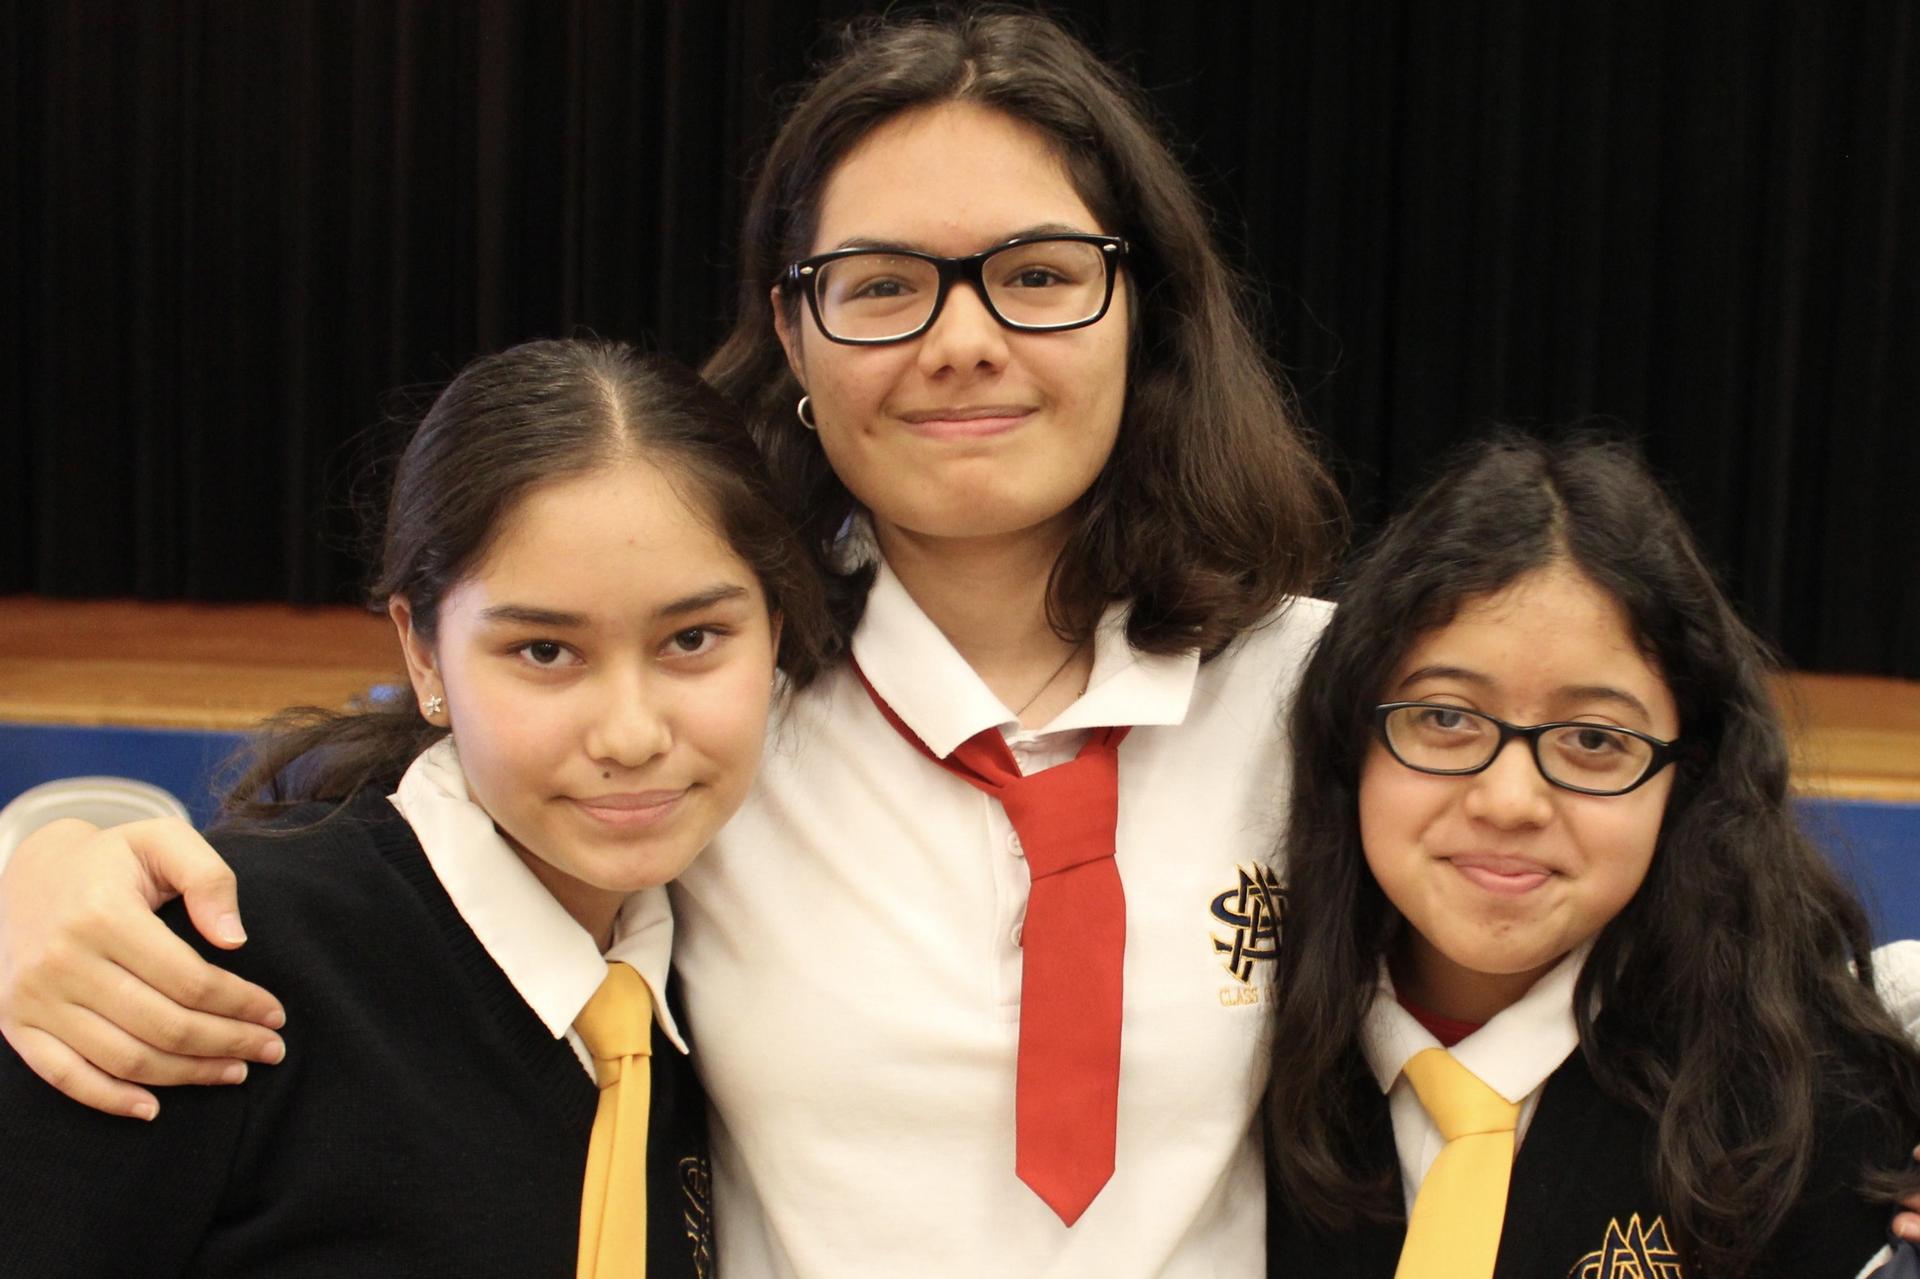 picture of 3 students